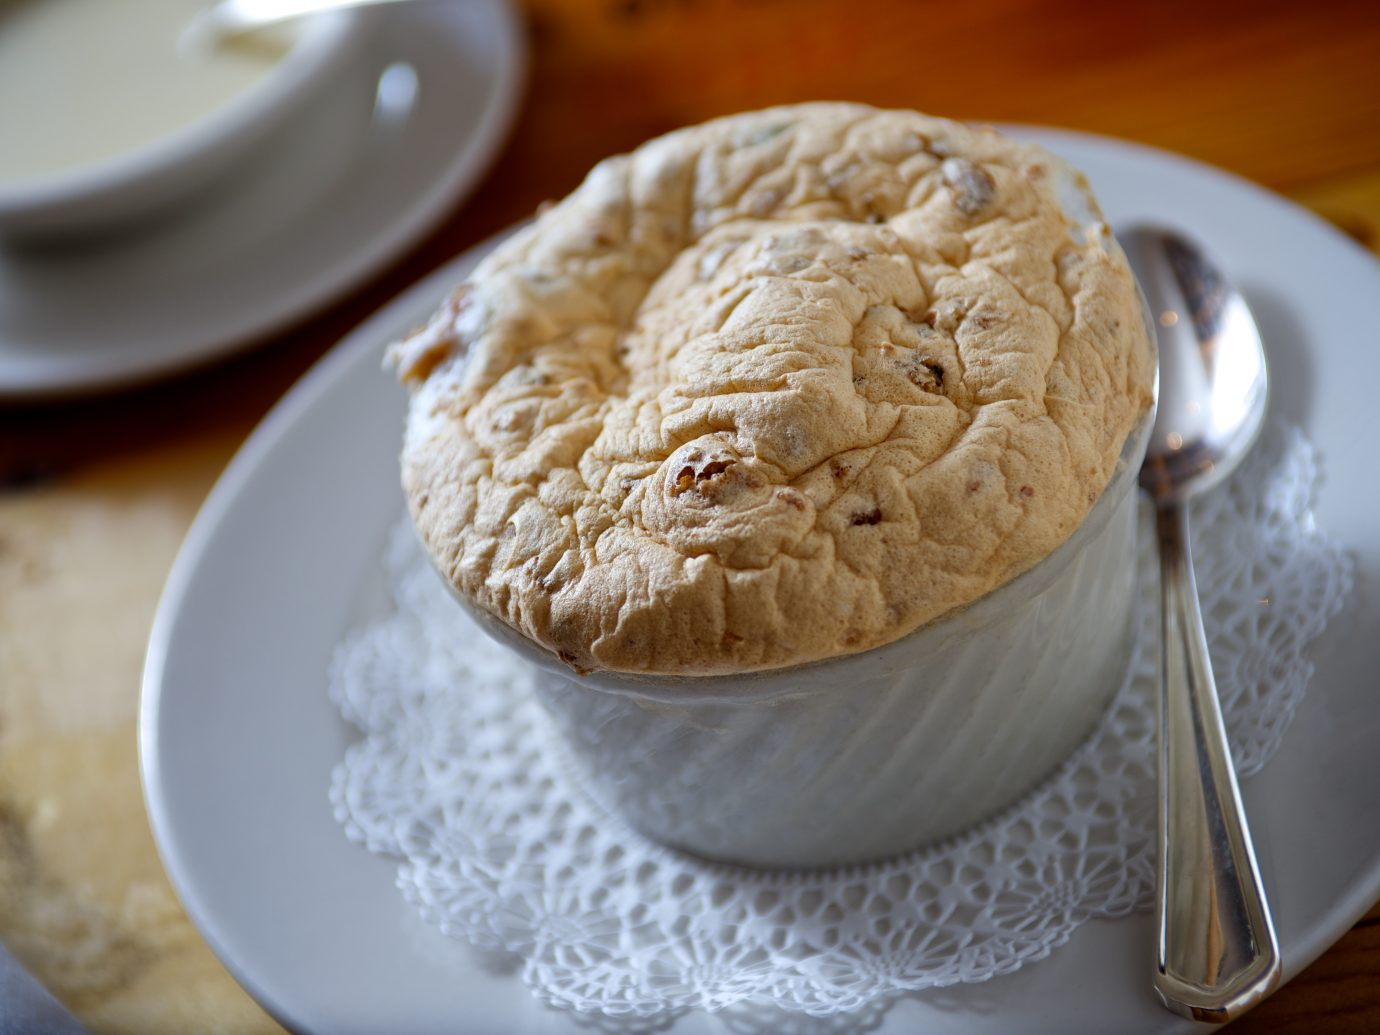 souffle at Commander's Palace